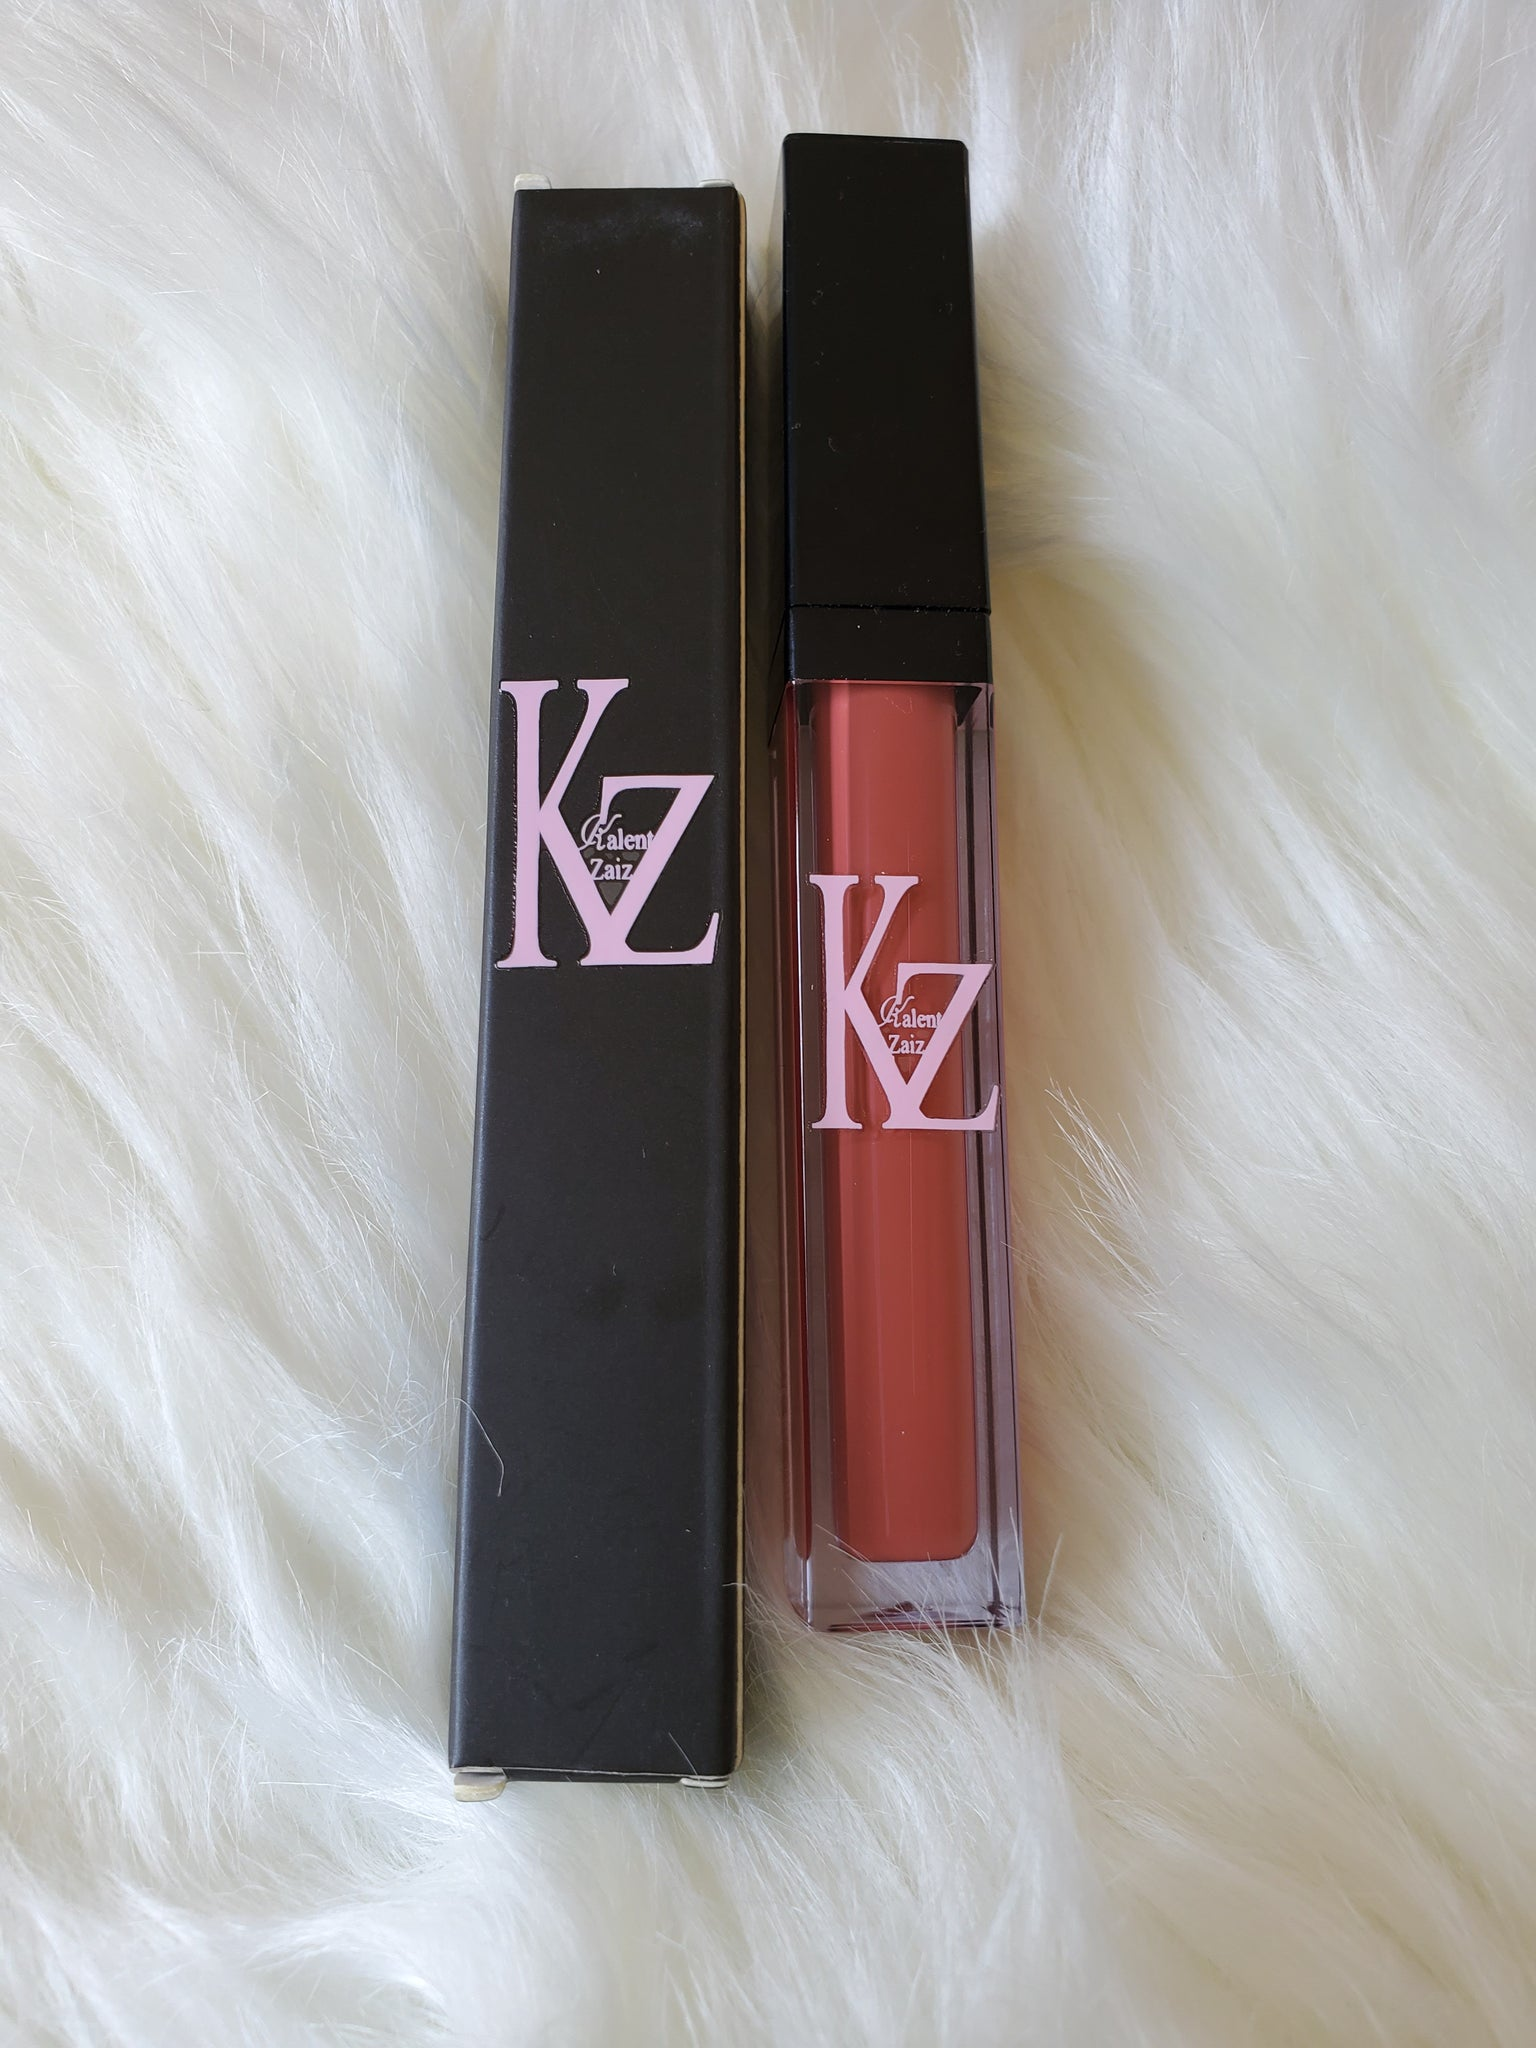 Kalent Zaiz Hot Blooded Liquid Matte lipstick #4 (Free Shipping to USA)